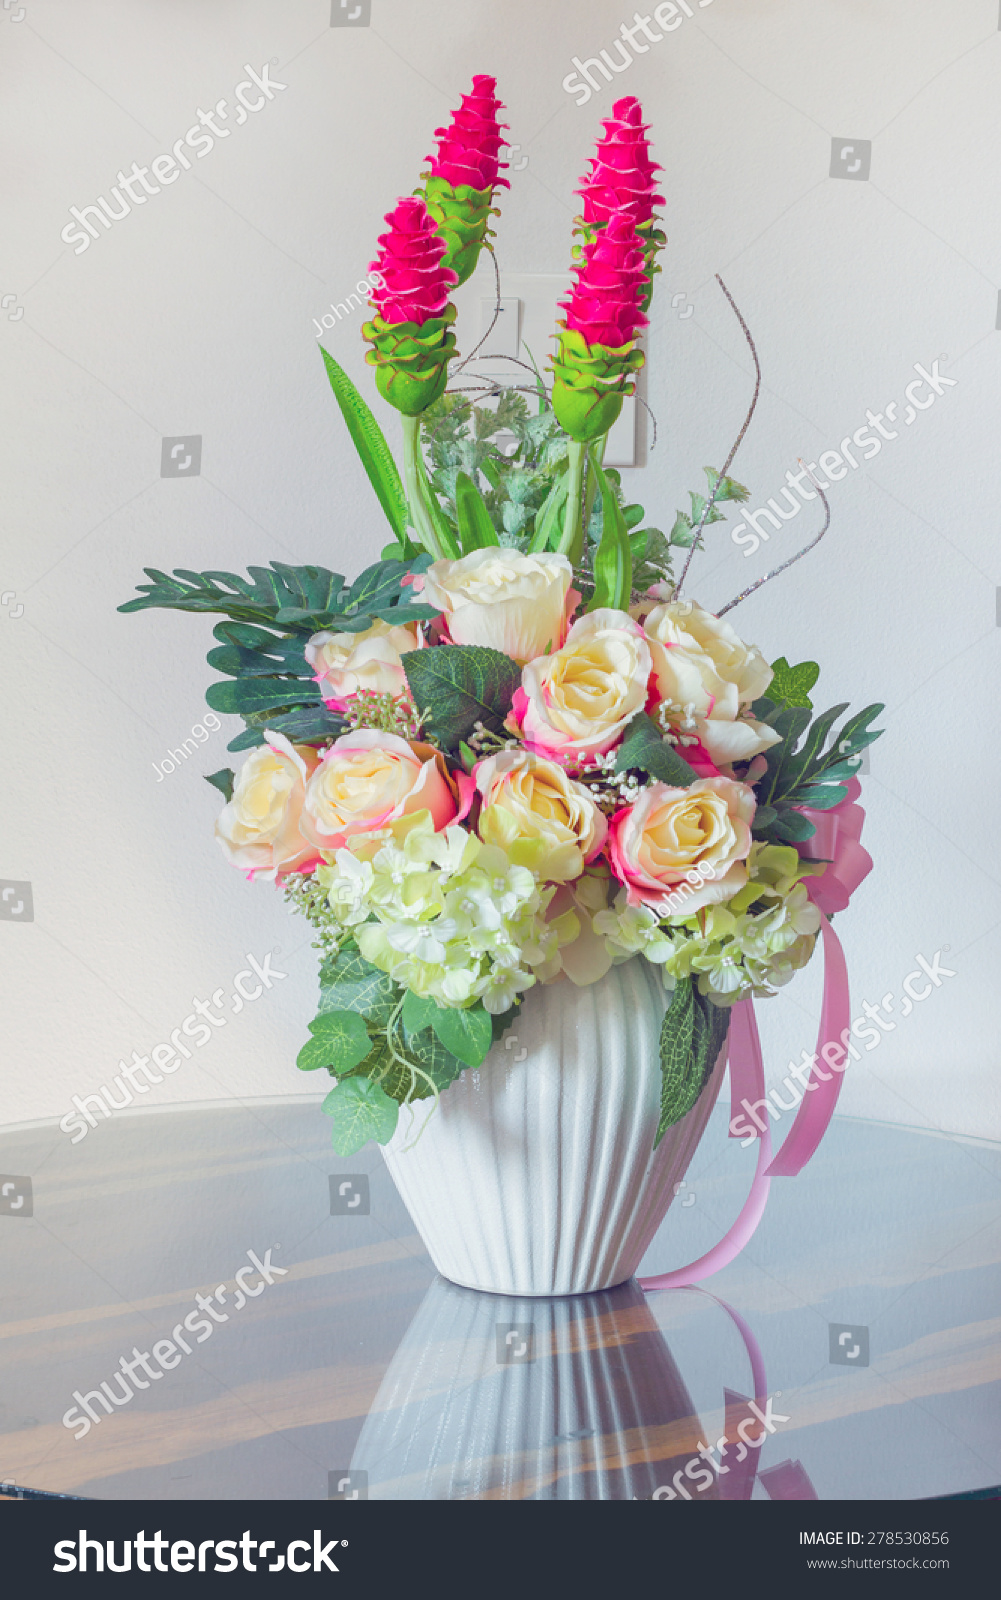 Beautiful fake flowers white pot on stock photo royalty free beautiful fake flowers in white pot on wood table cool tone izmirmasajfo